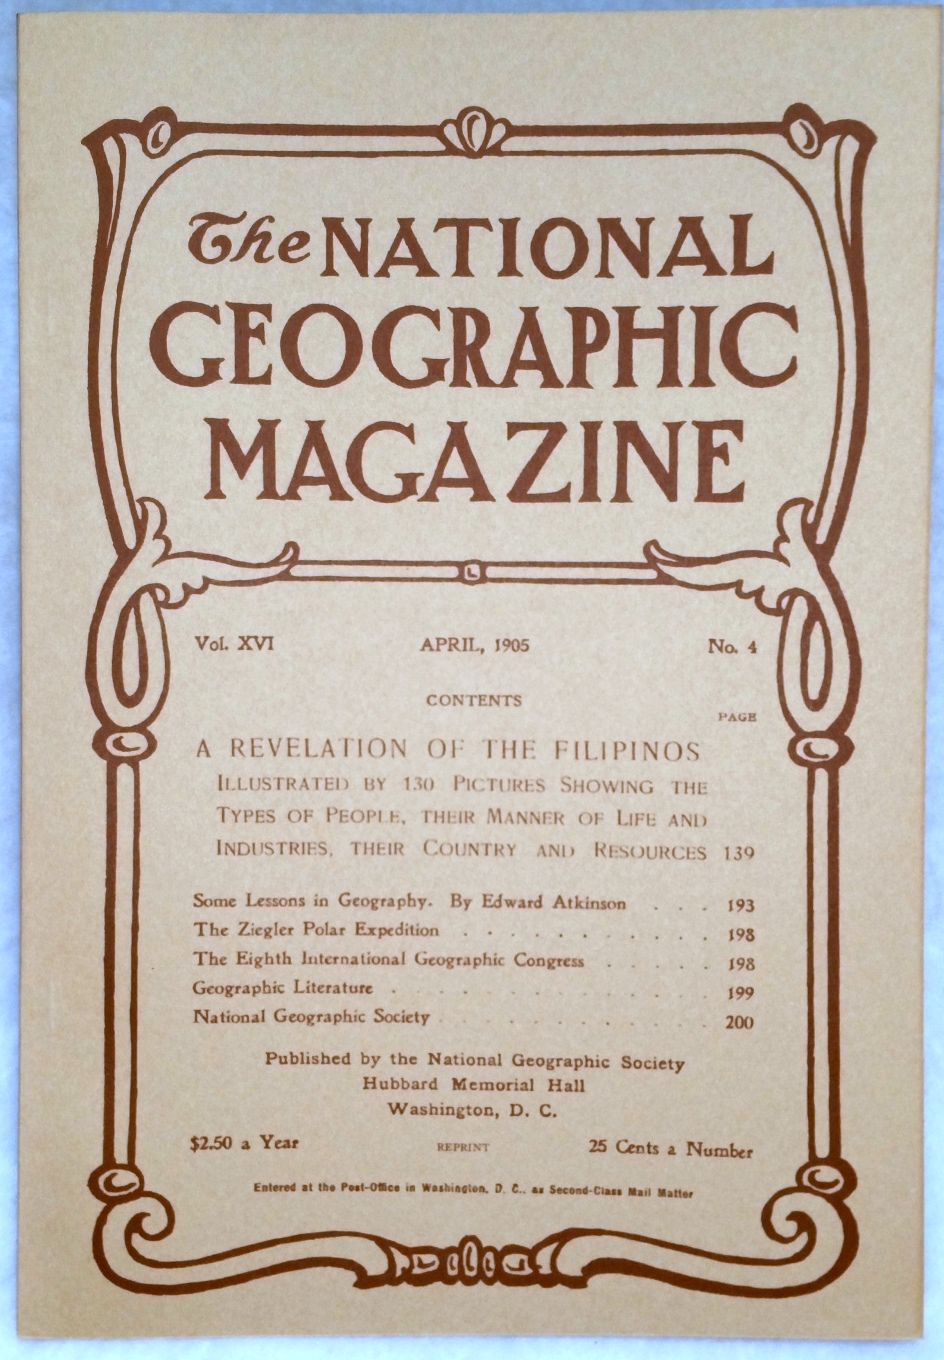 Image for The National Geographic Magazine, Vol.  XVI. No. 4, April, 1905 [Facsimile Reprint]